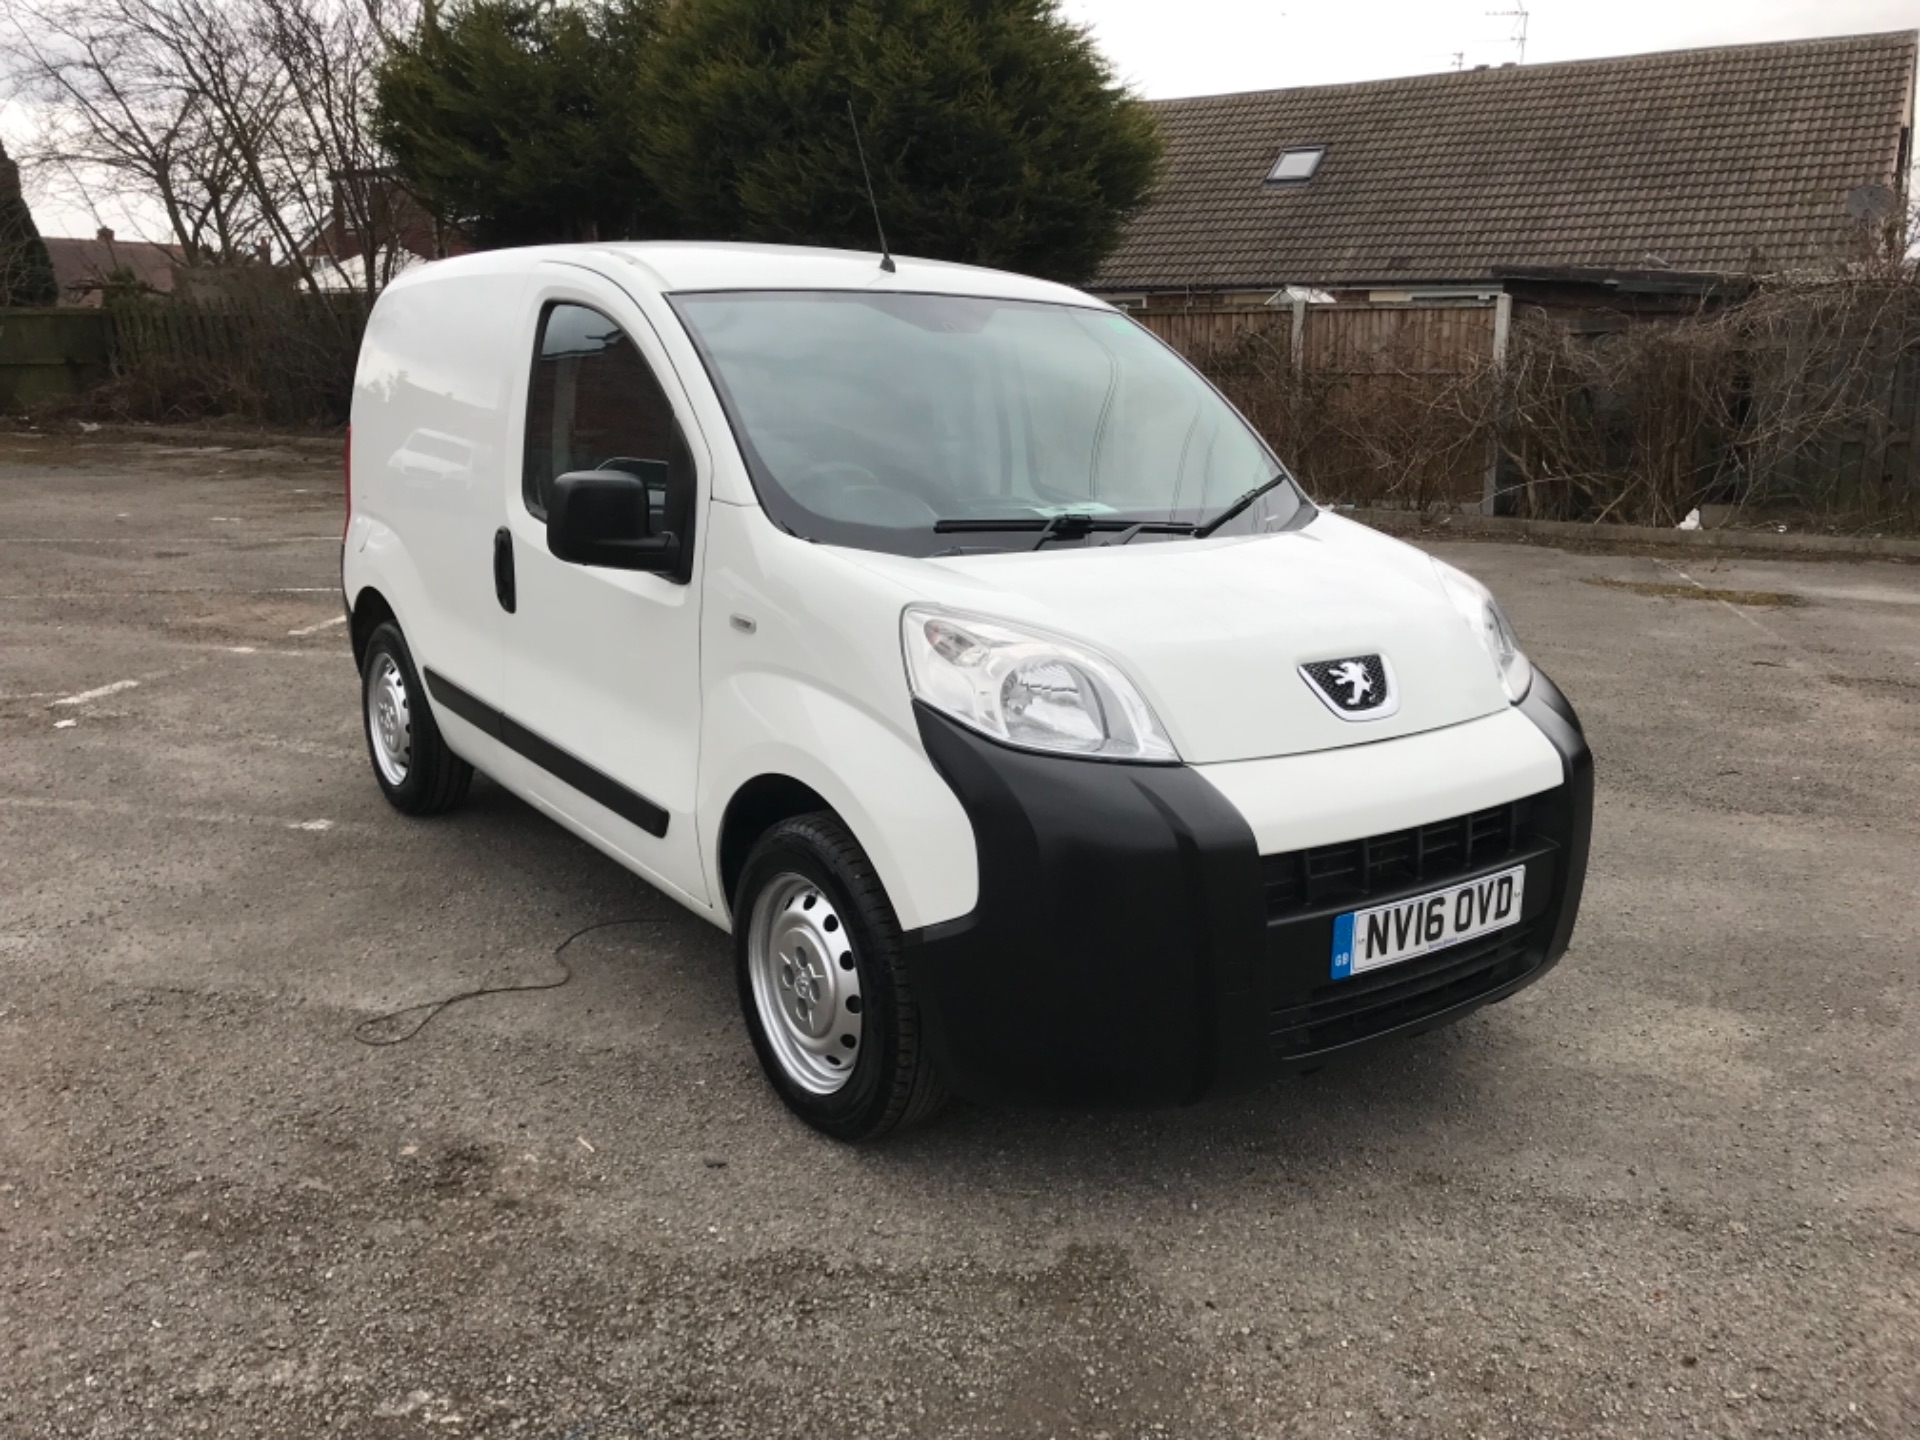 2016 Peugeot Bipper 1.3 Hdi 75 S Plus Pack [Sld] EURO 5  (NV16OVD)